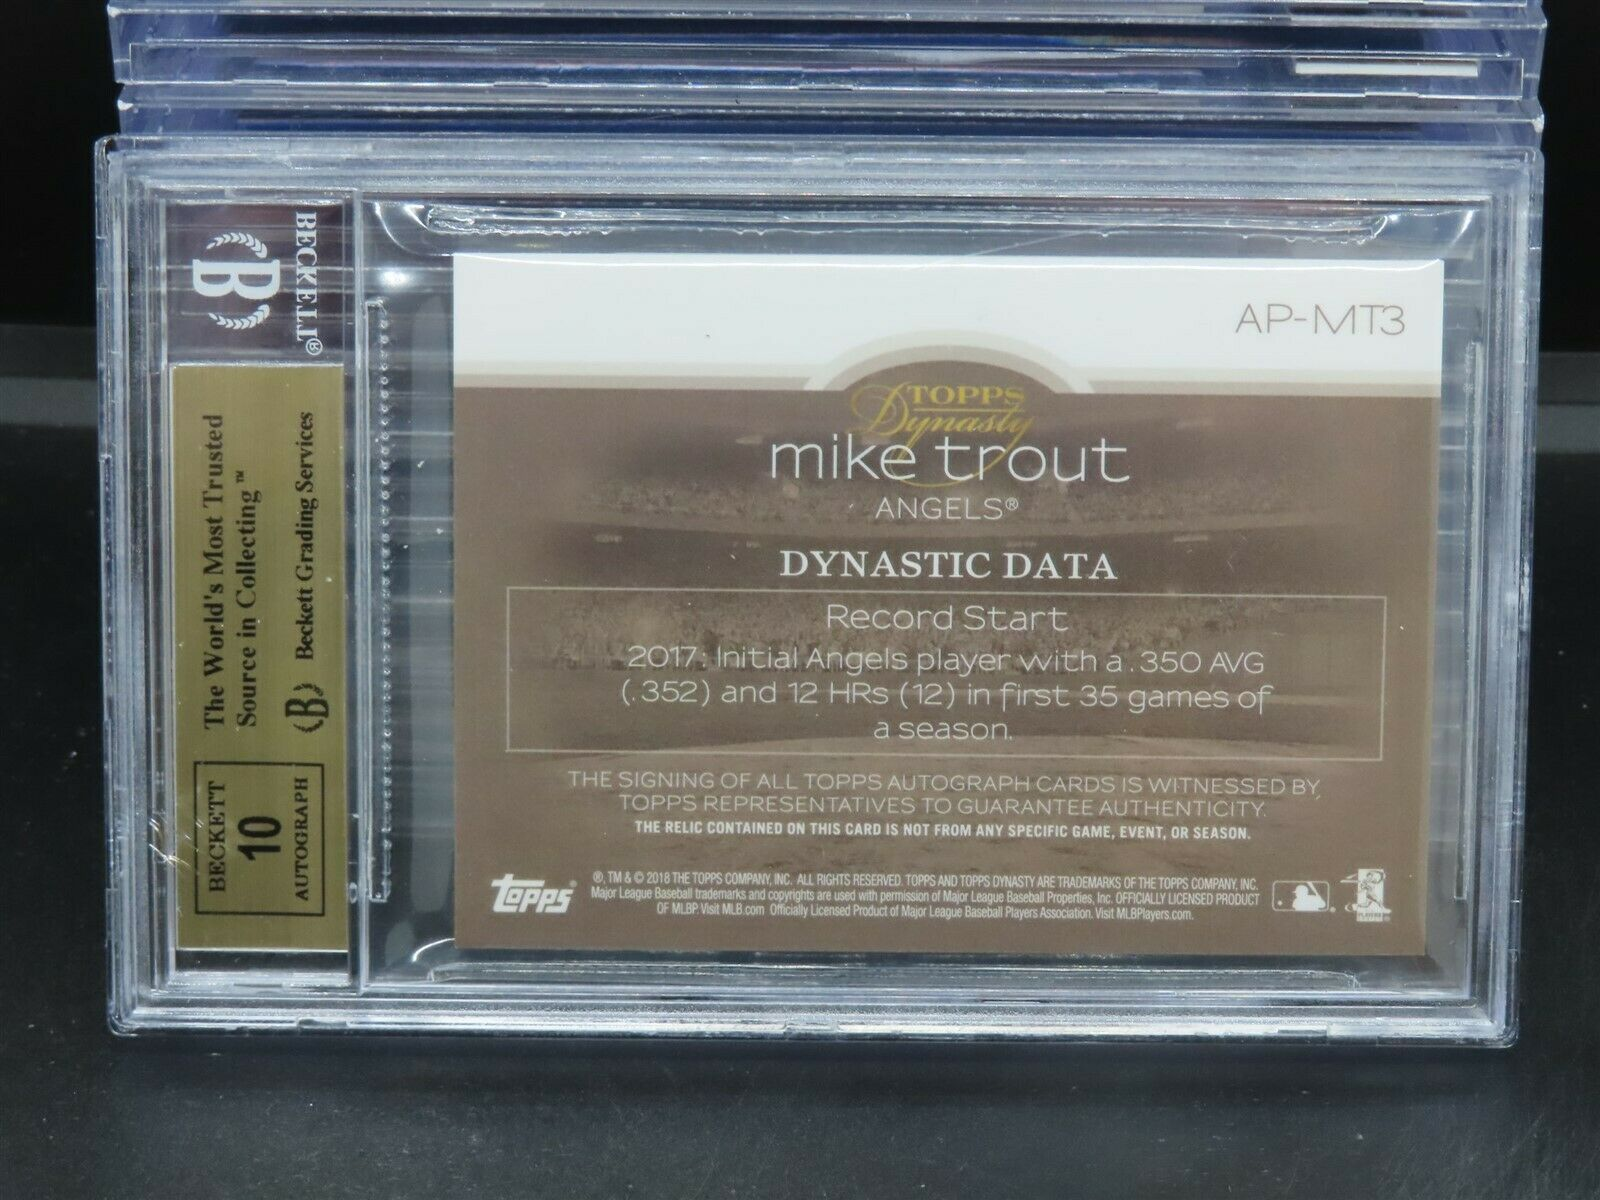 2018 Topps Dynasty Mike Trout GU Patch Auto Autograph #3/10 BGS 9.5/10 M581 - Image 2